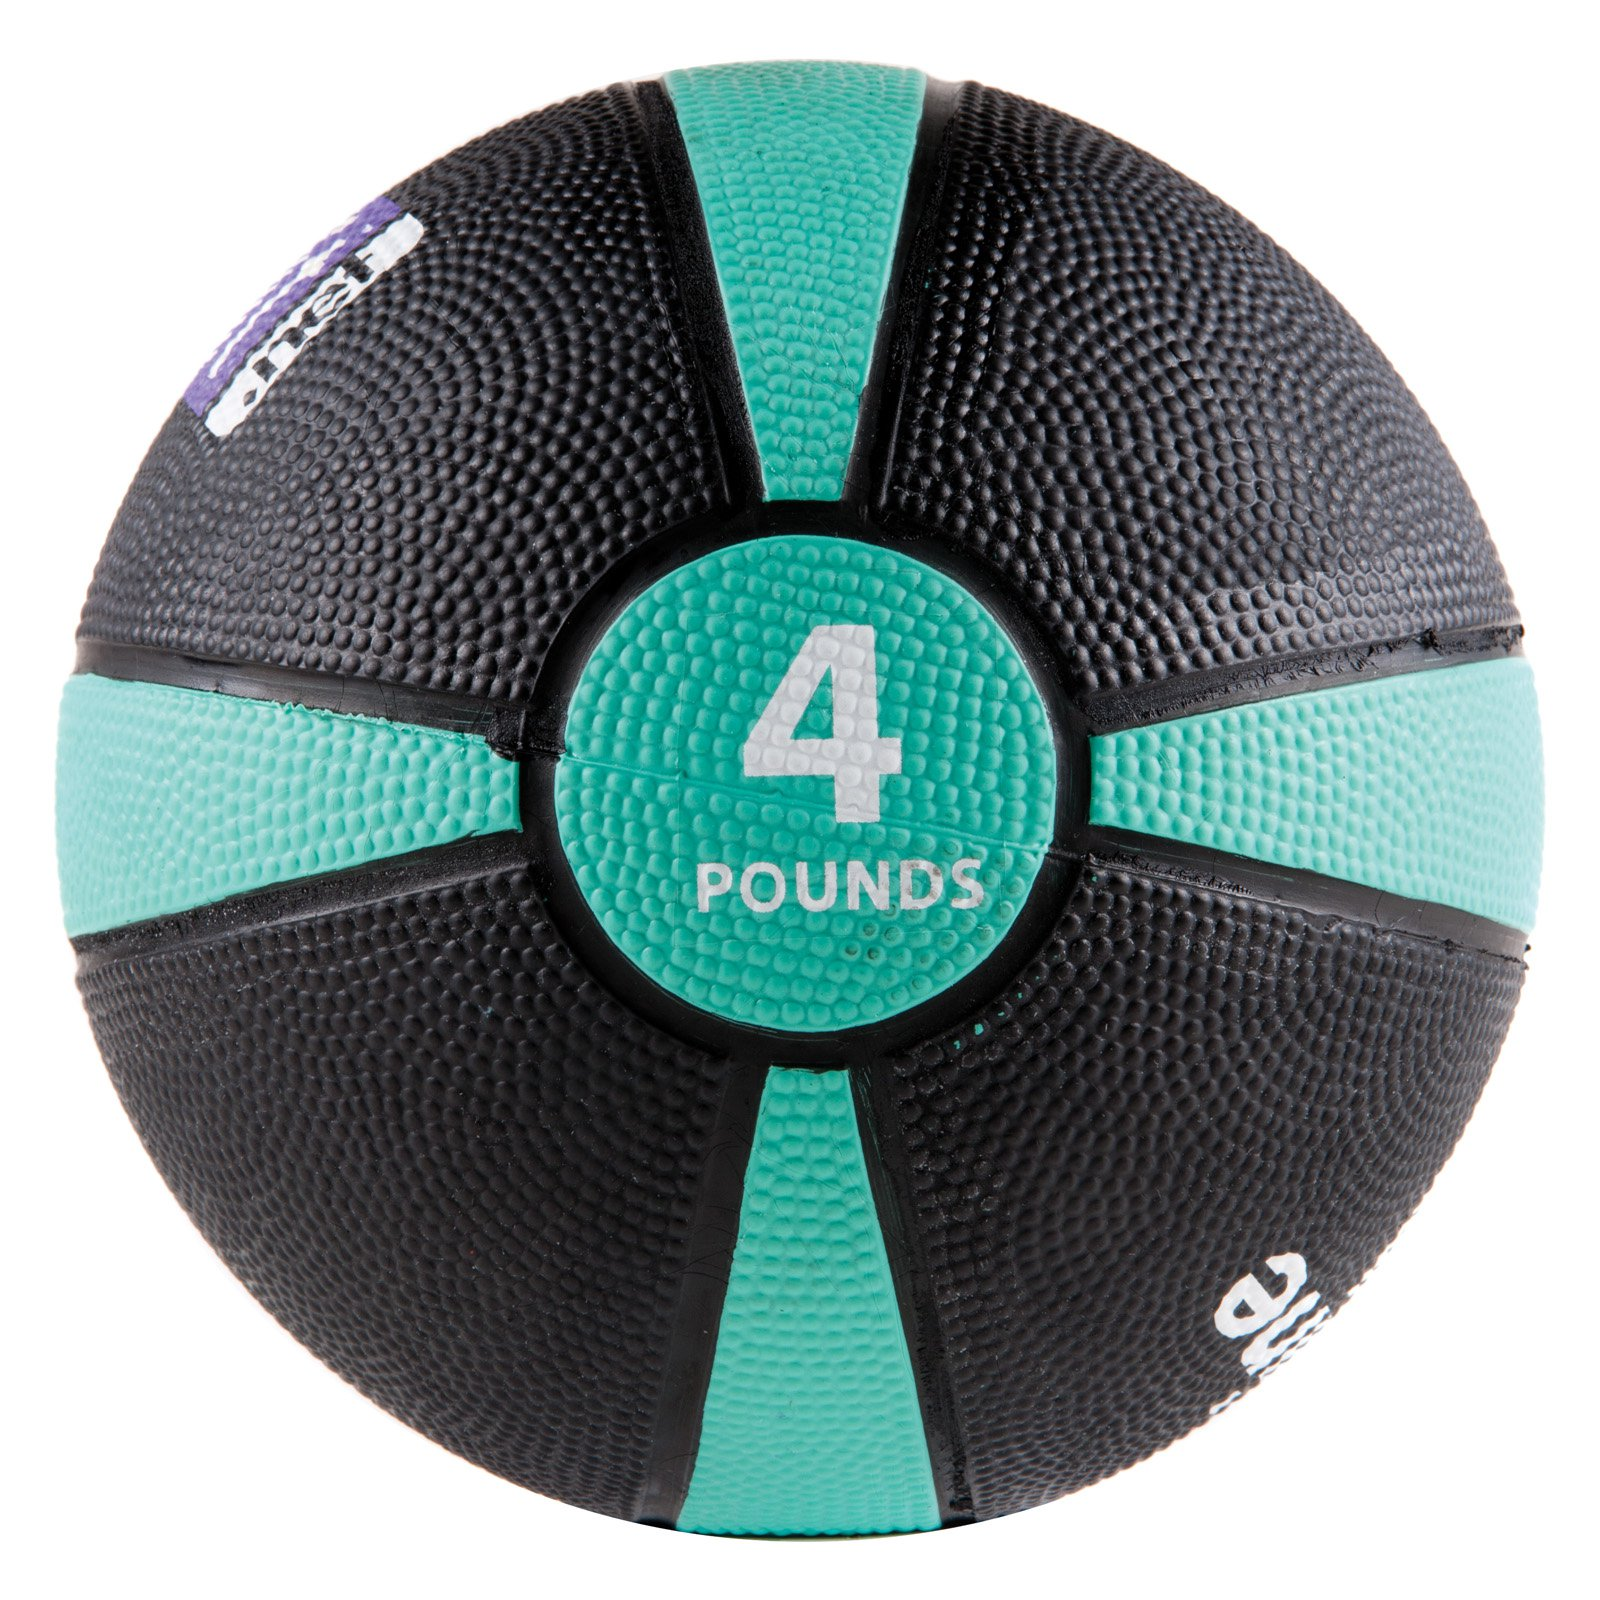 GoFit 4-lb Medicine Ball and Core Performance Training DVD